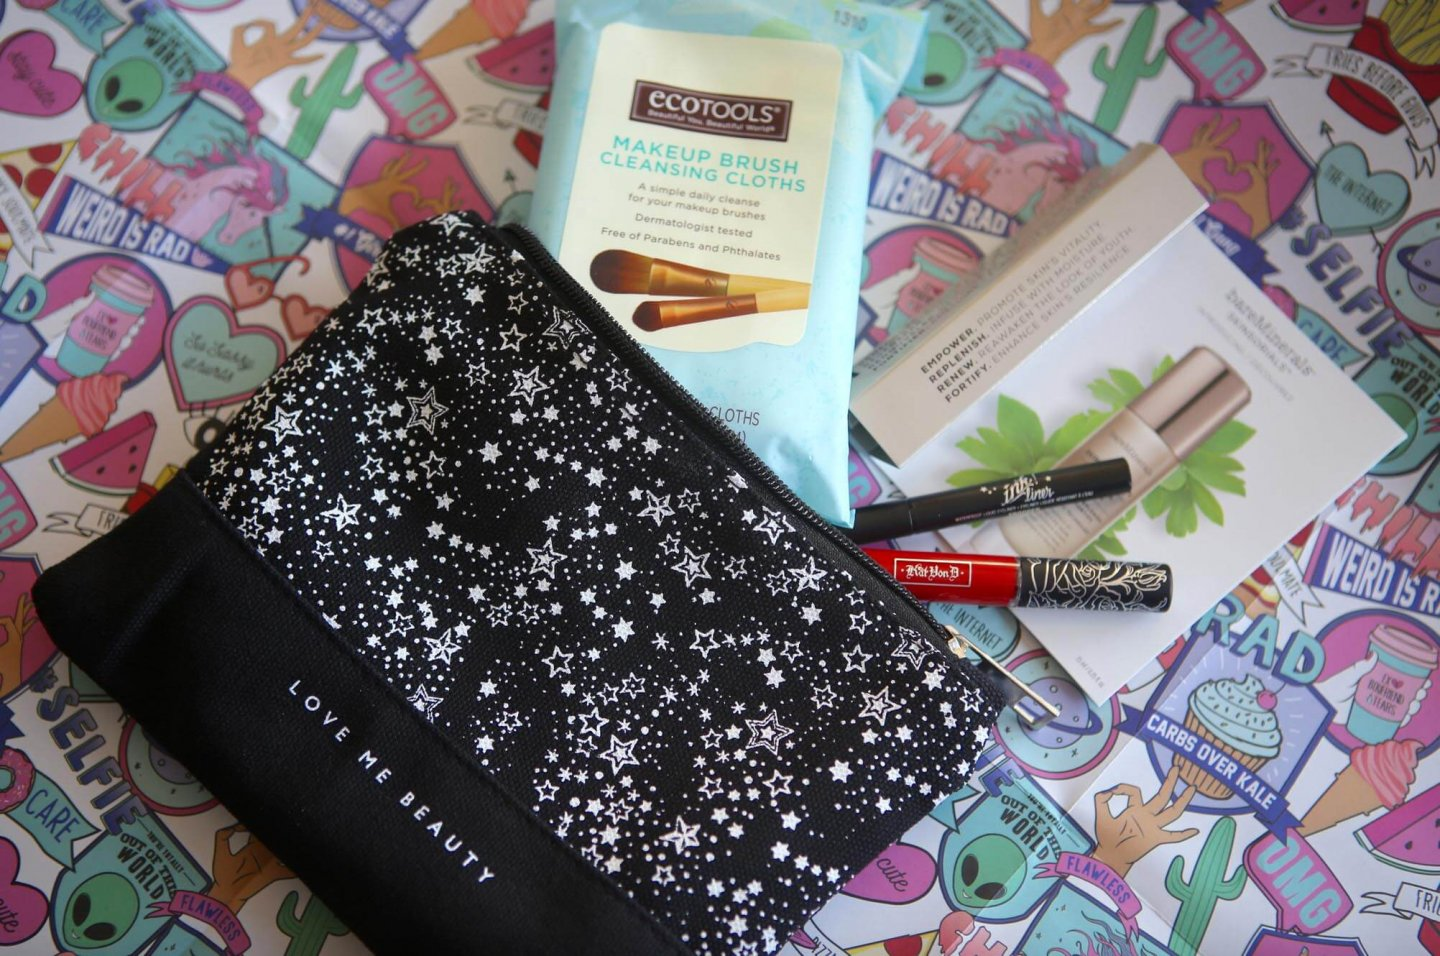 Introducing Love Me Beauty, The Brand New Beauty Box